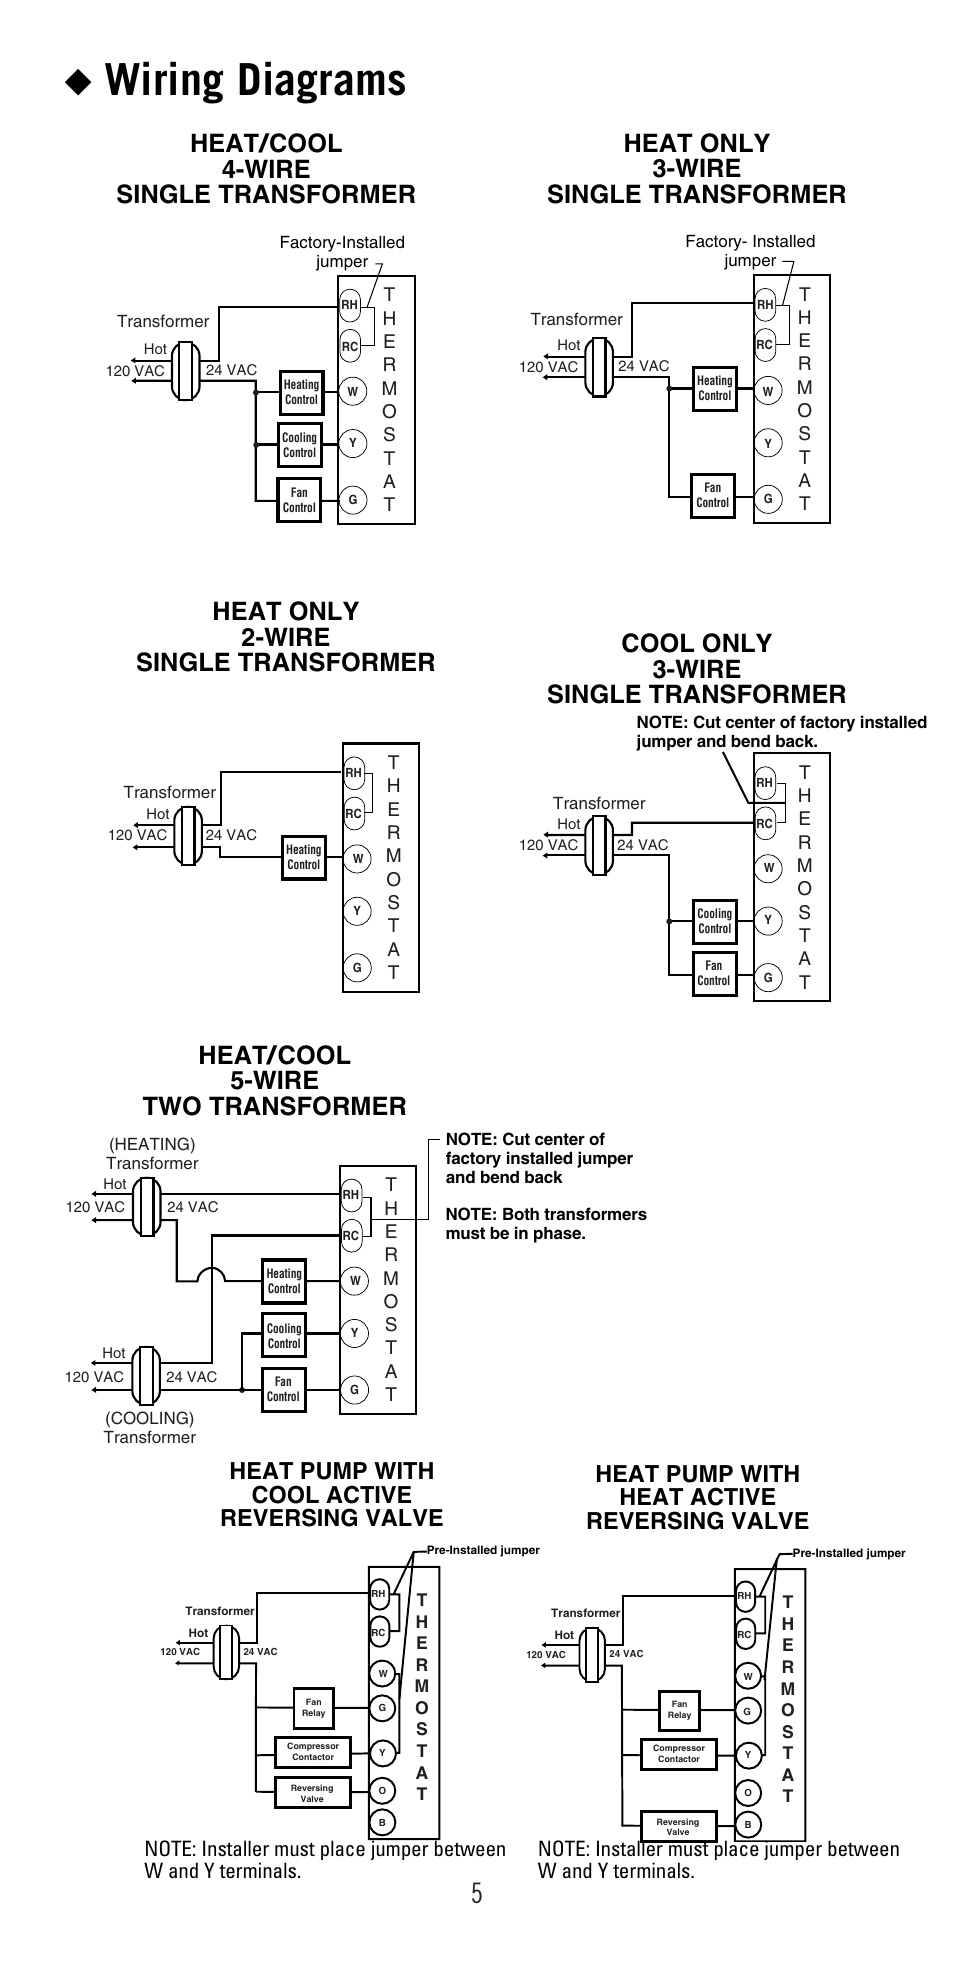 hight resolution of wiring diagrams heat pump with cool active reversing valve heatwiring diagrams heat pump